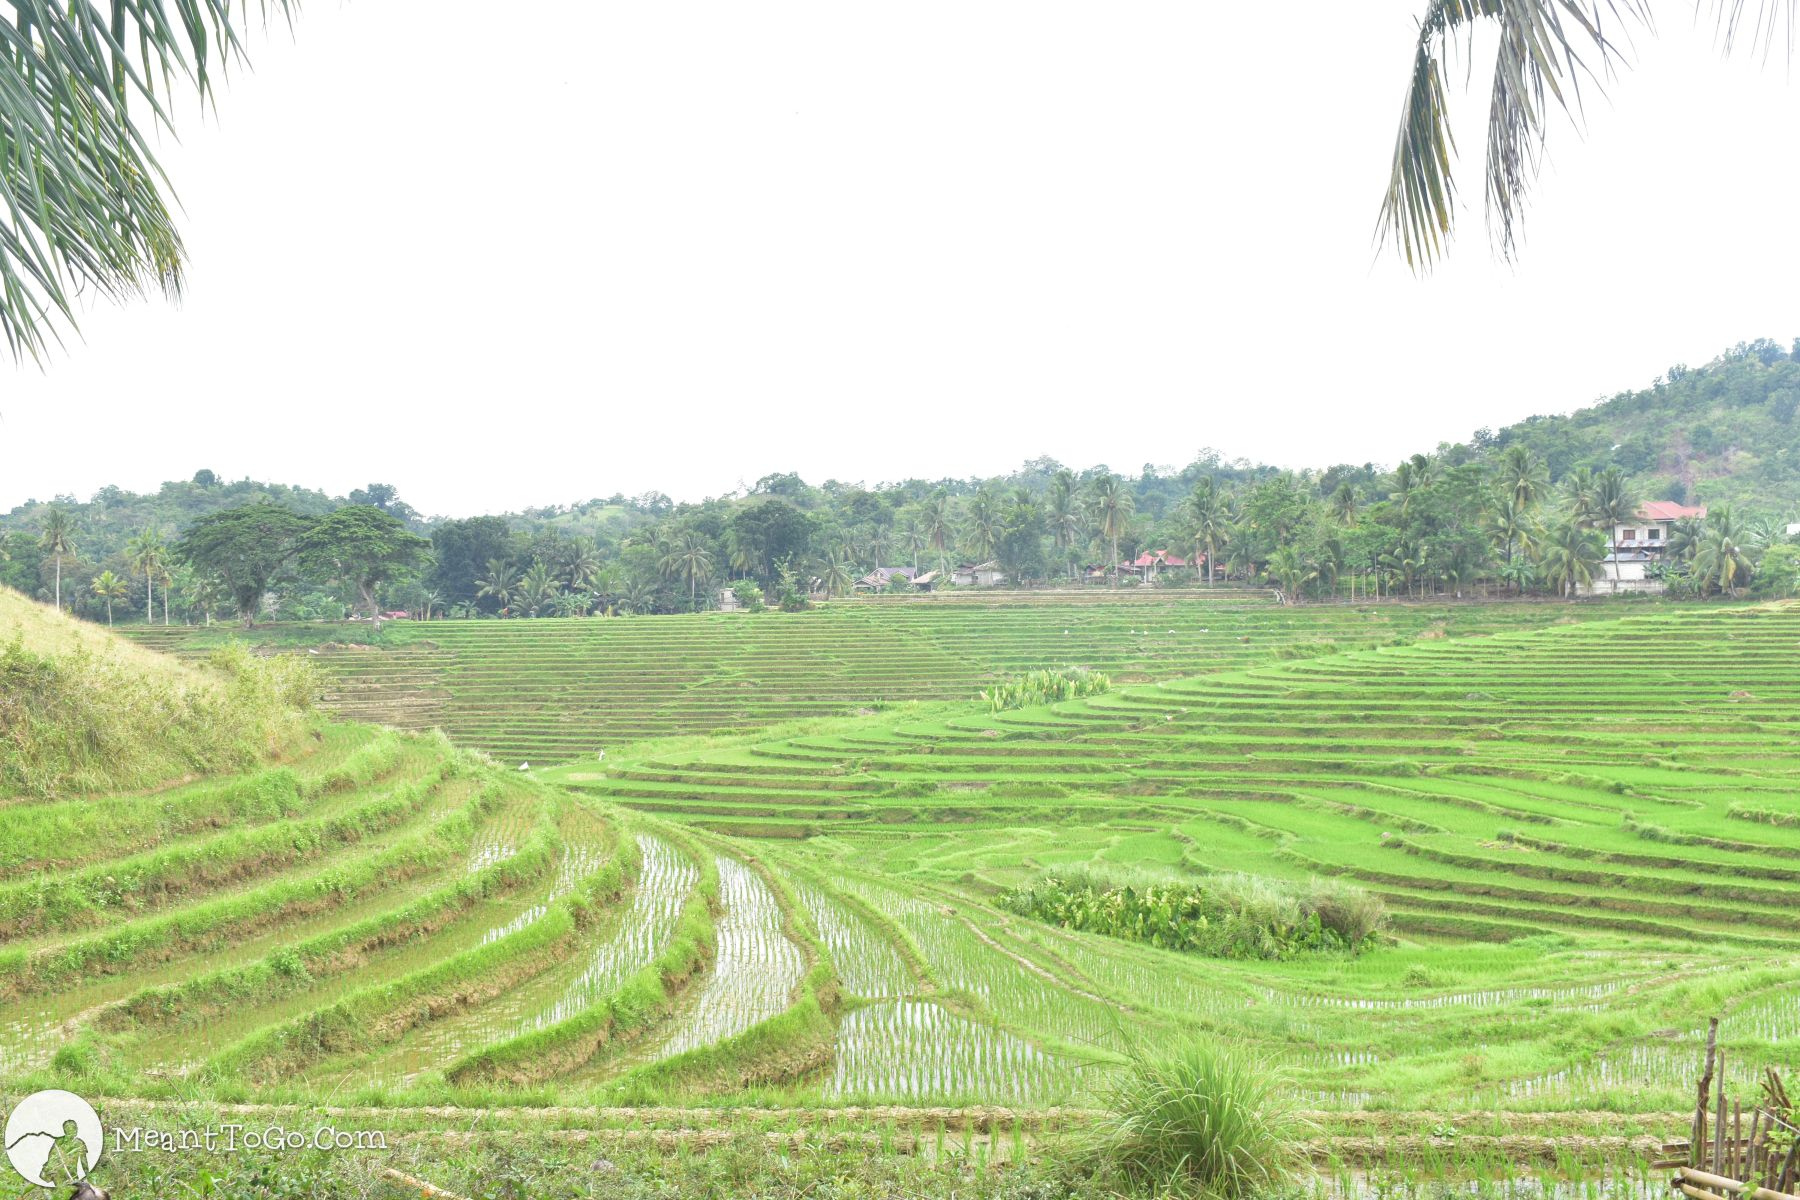 Cadapdapan Rice Terraces, Candijay, Bohol, Philippines